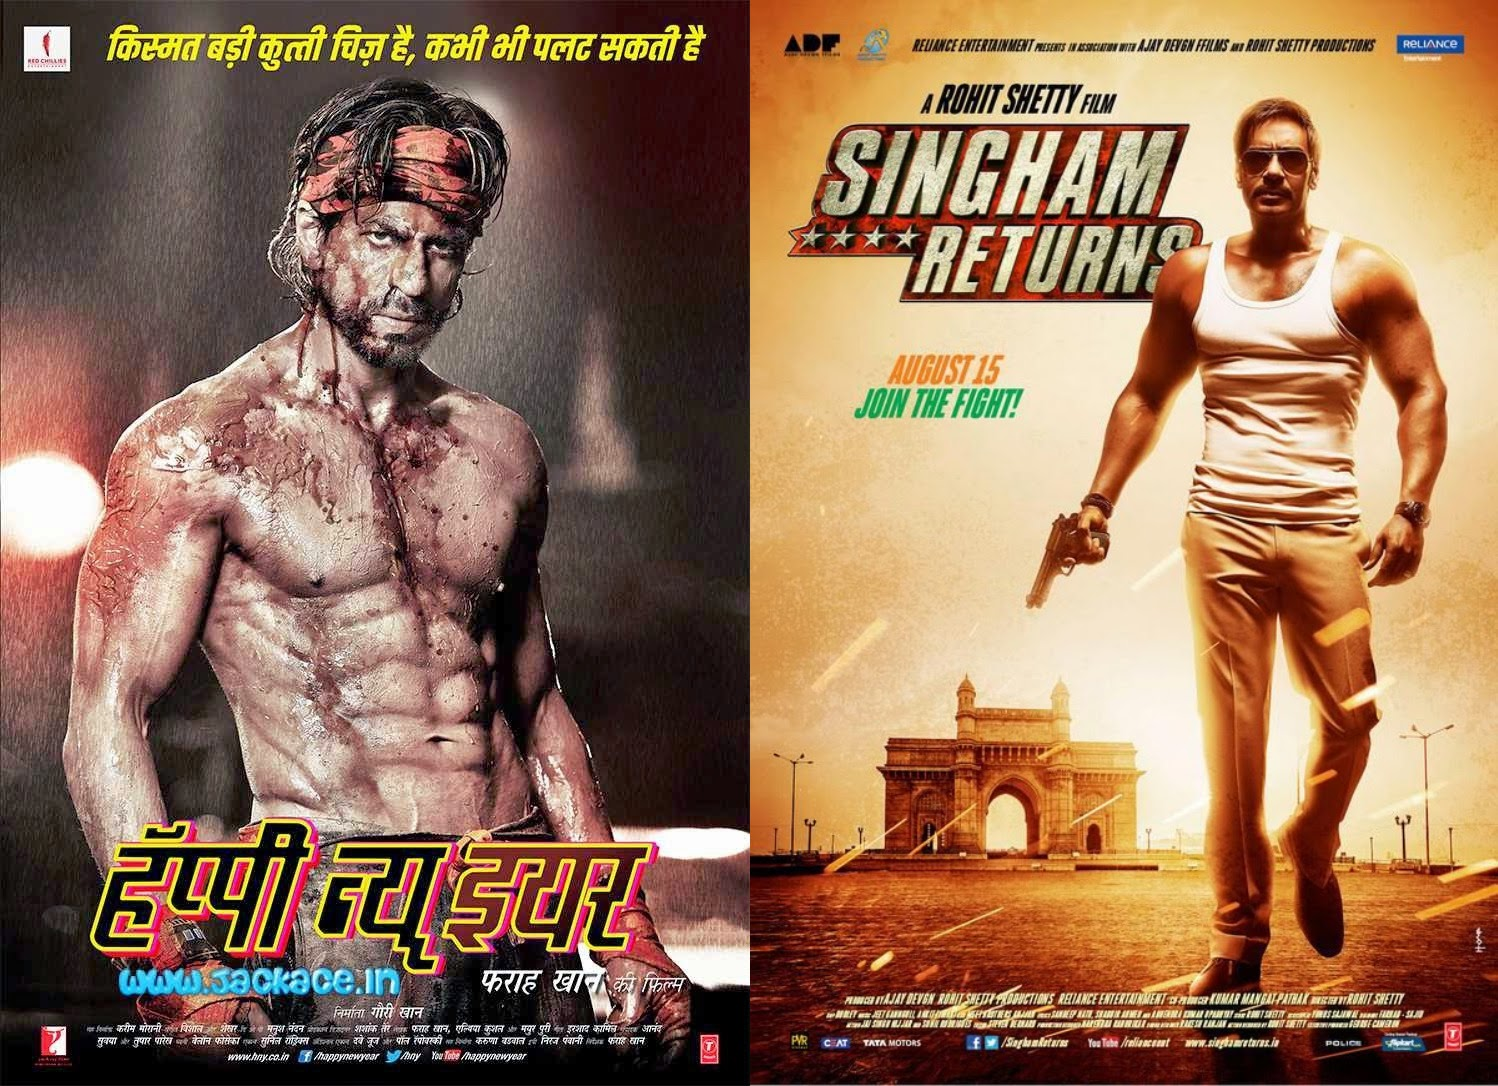 Happy New Year Beat Singham Returns Enter Top 3 Bollywood Movies In 2014